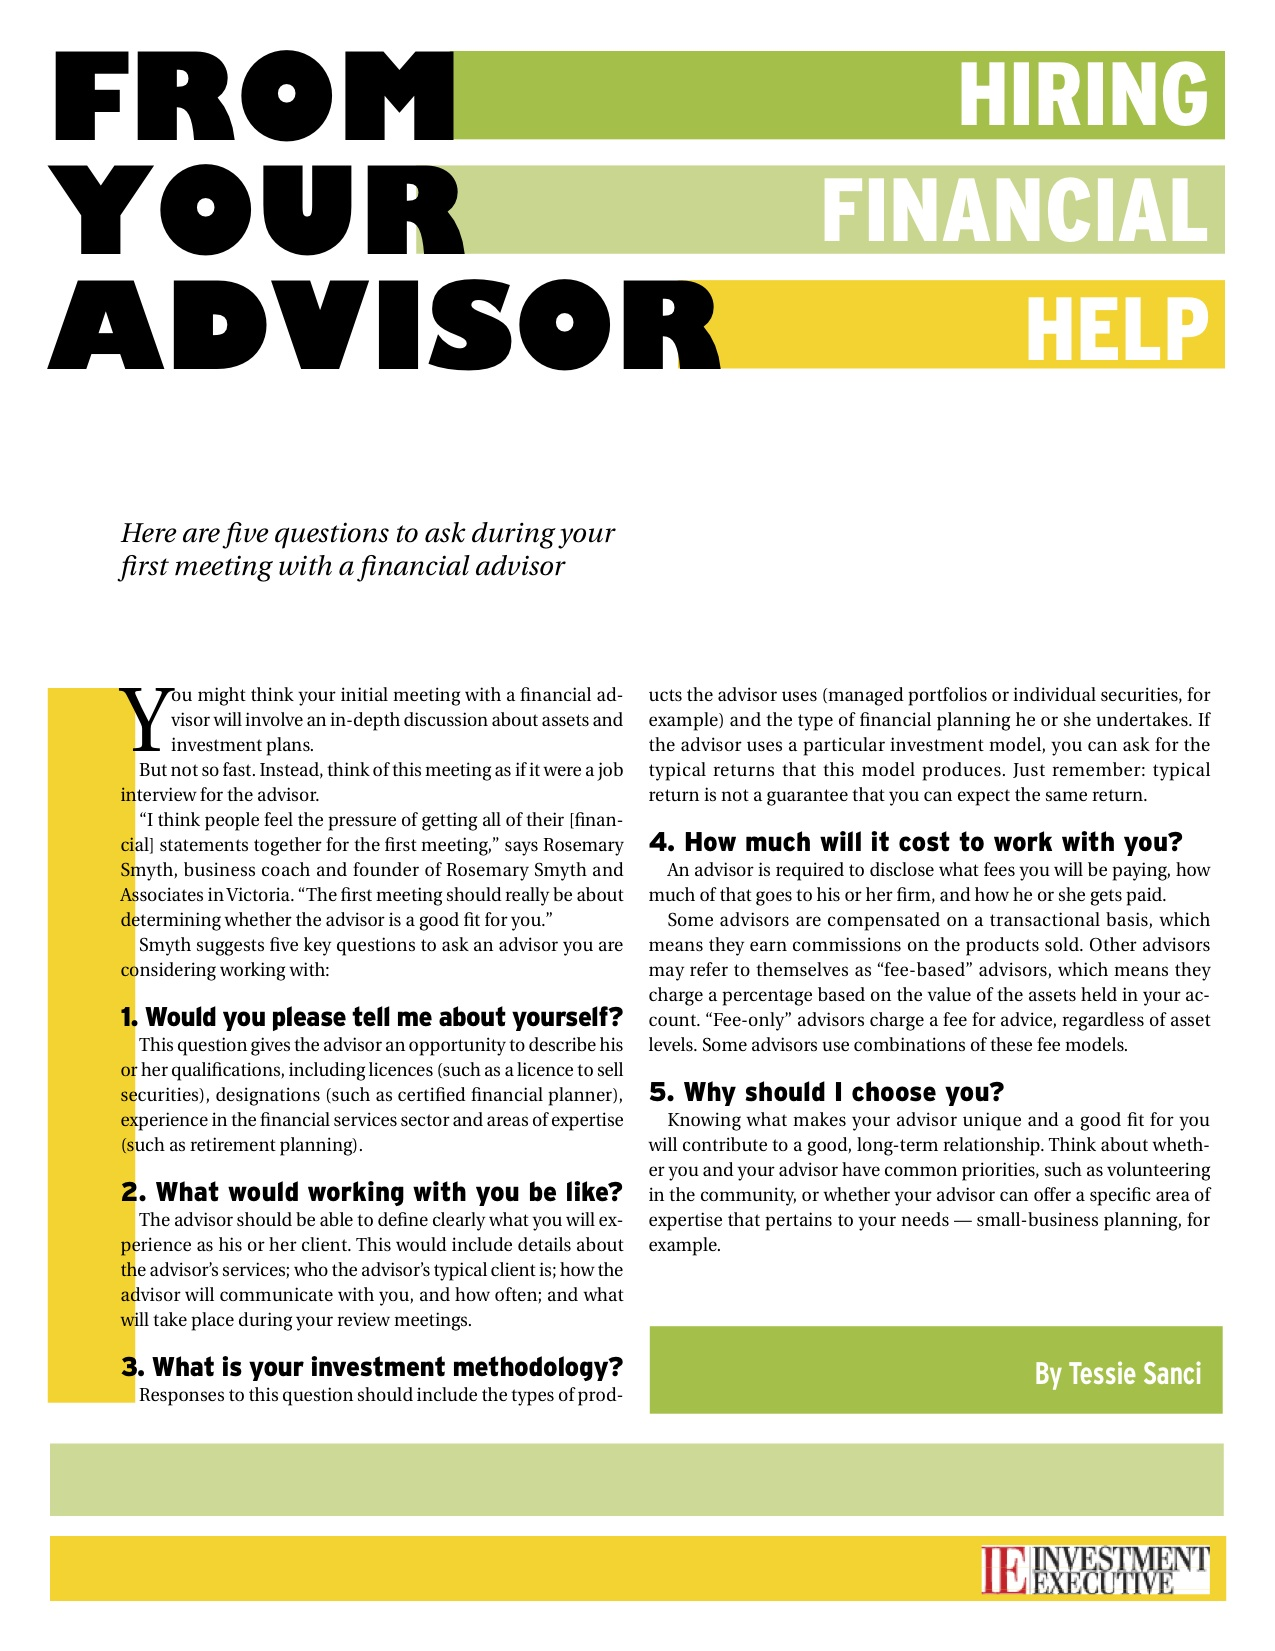 Hiring an advisor